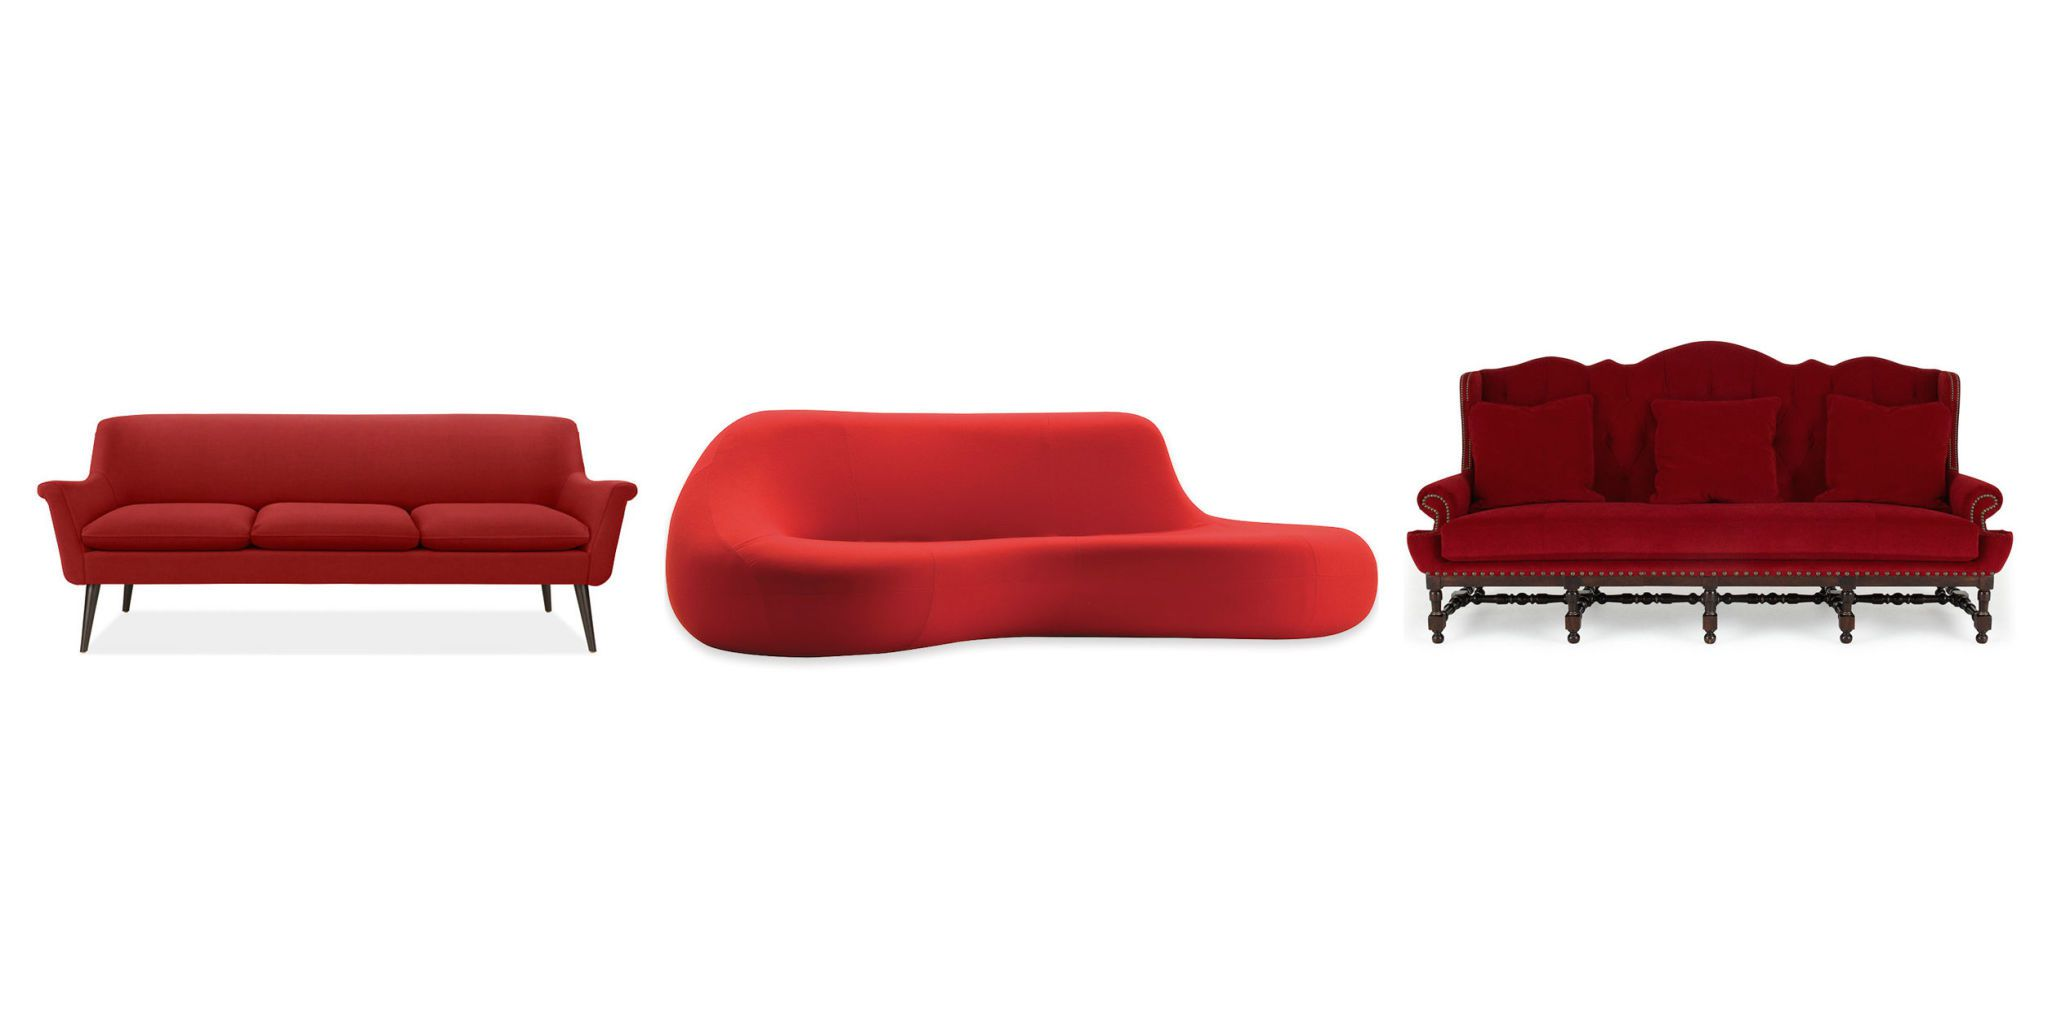 red sofas red couch XBCGTFF